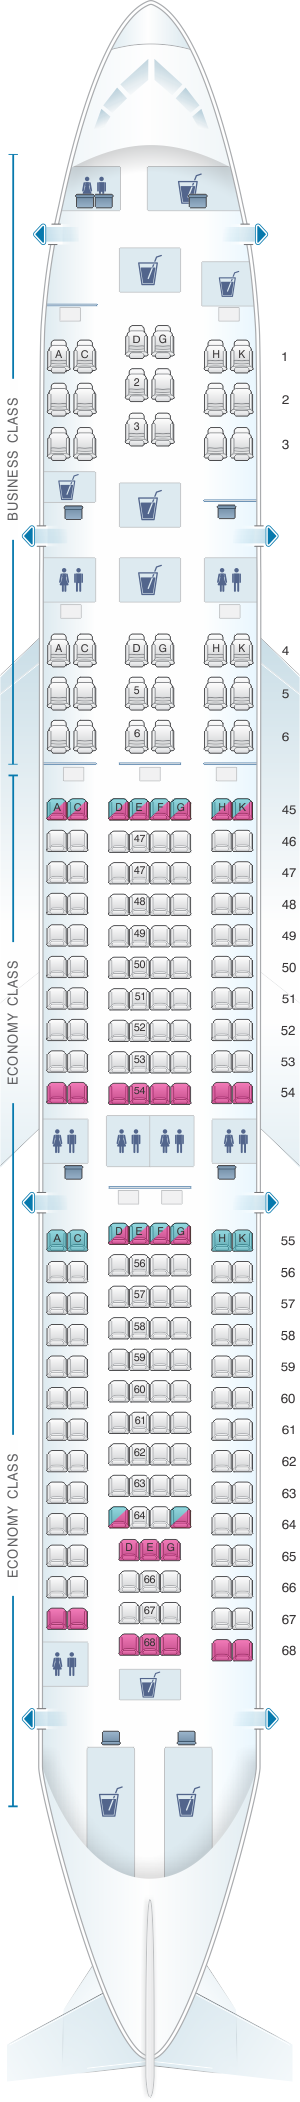 Seat map for South African Airways Airbus A330 200